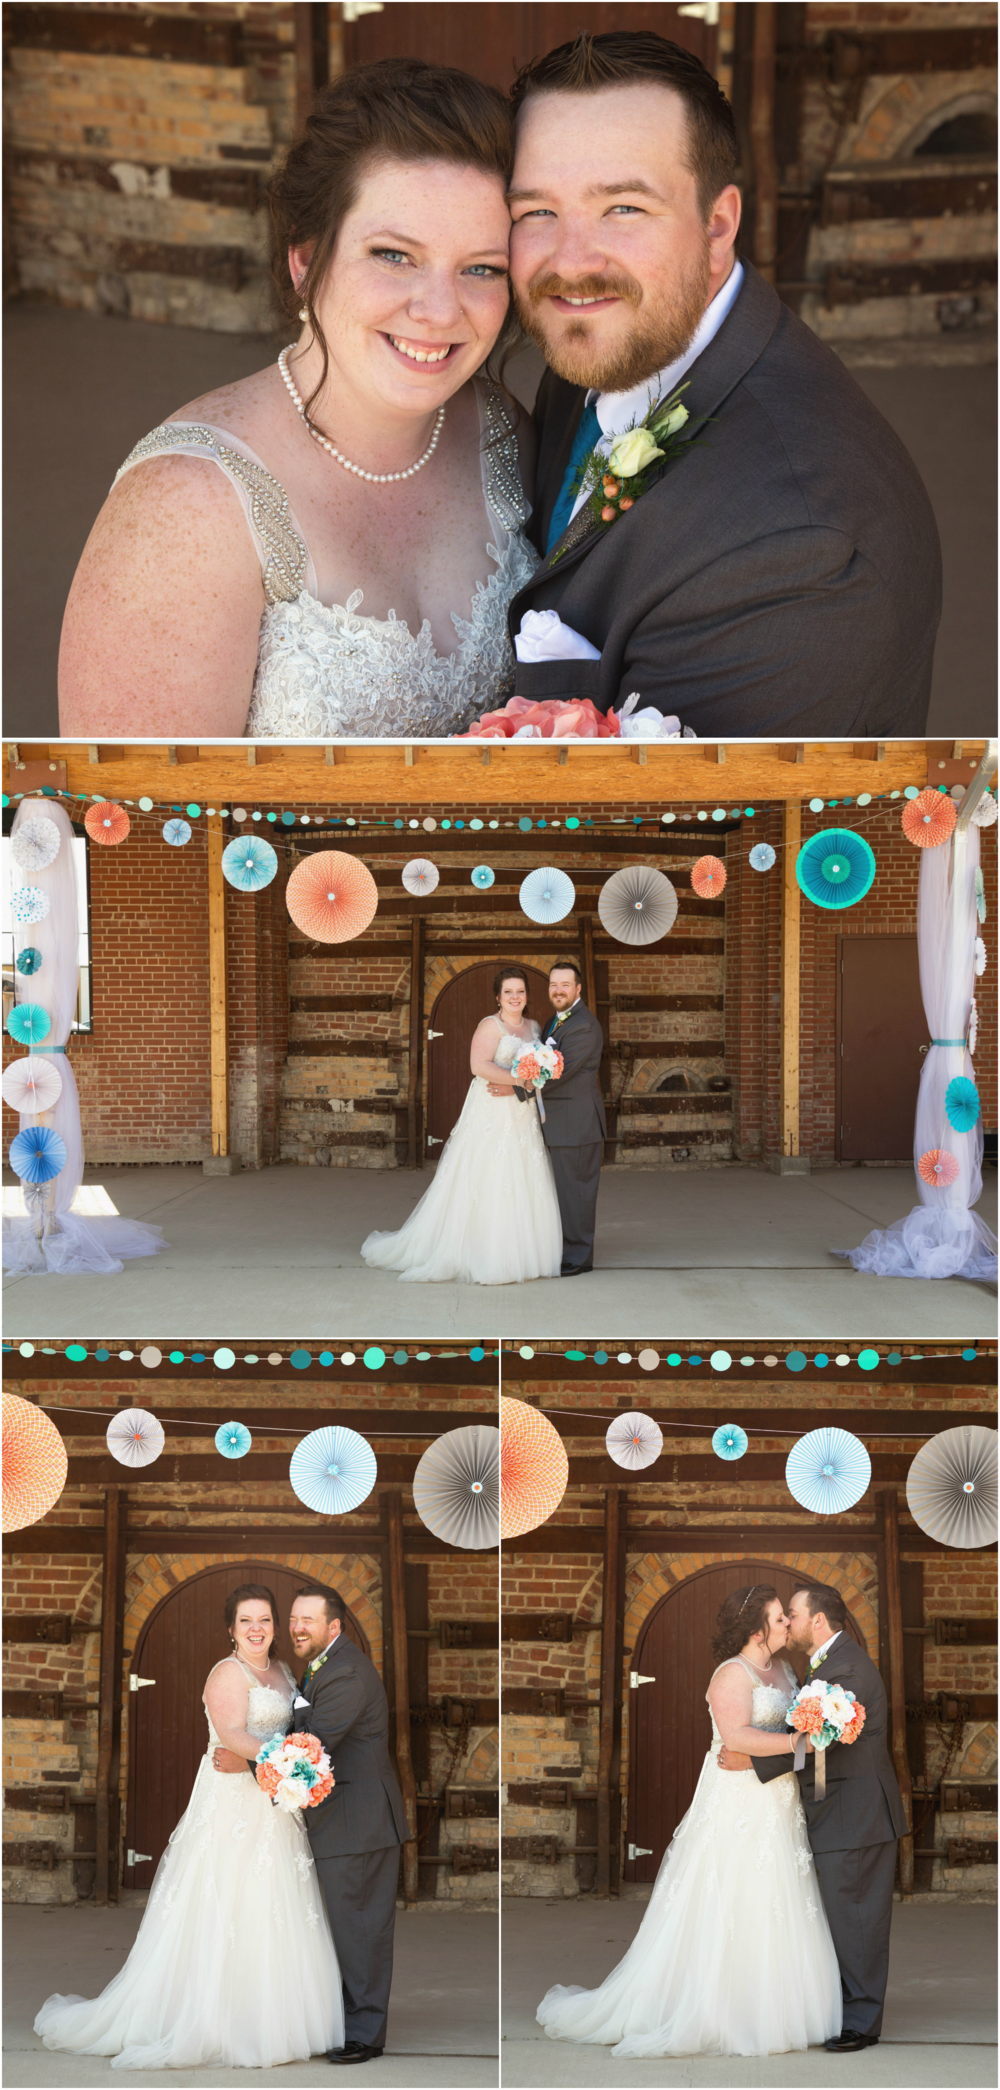 medalta_wedding_medicine_hat_08.png